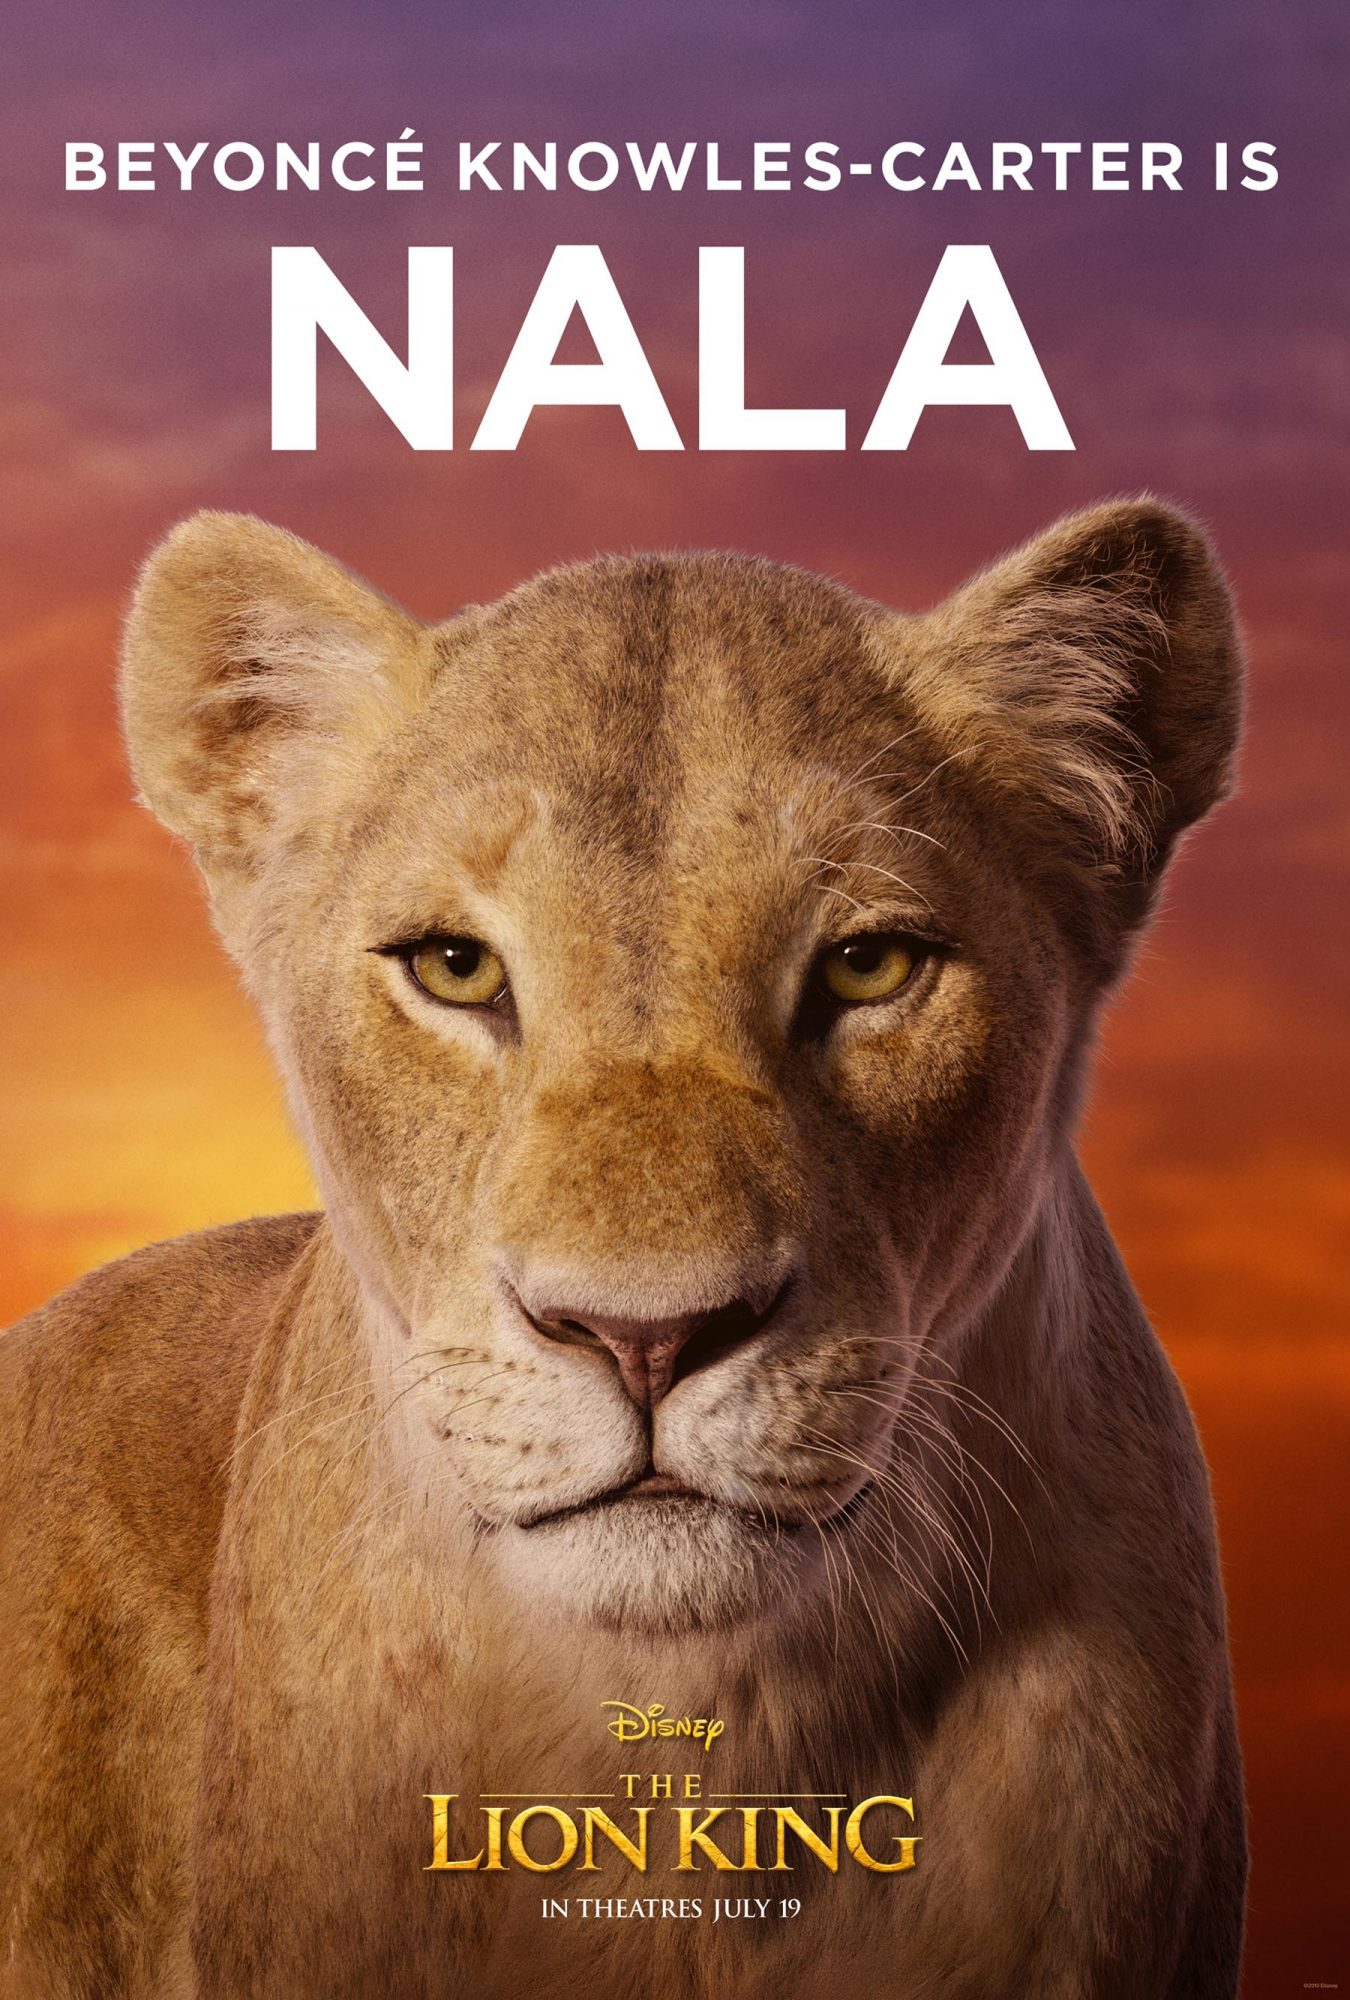 The Lion King Posters Turns Beyonce Donald Glover More Into Animal Royalty Ew Com